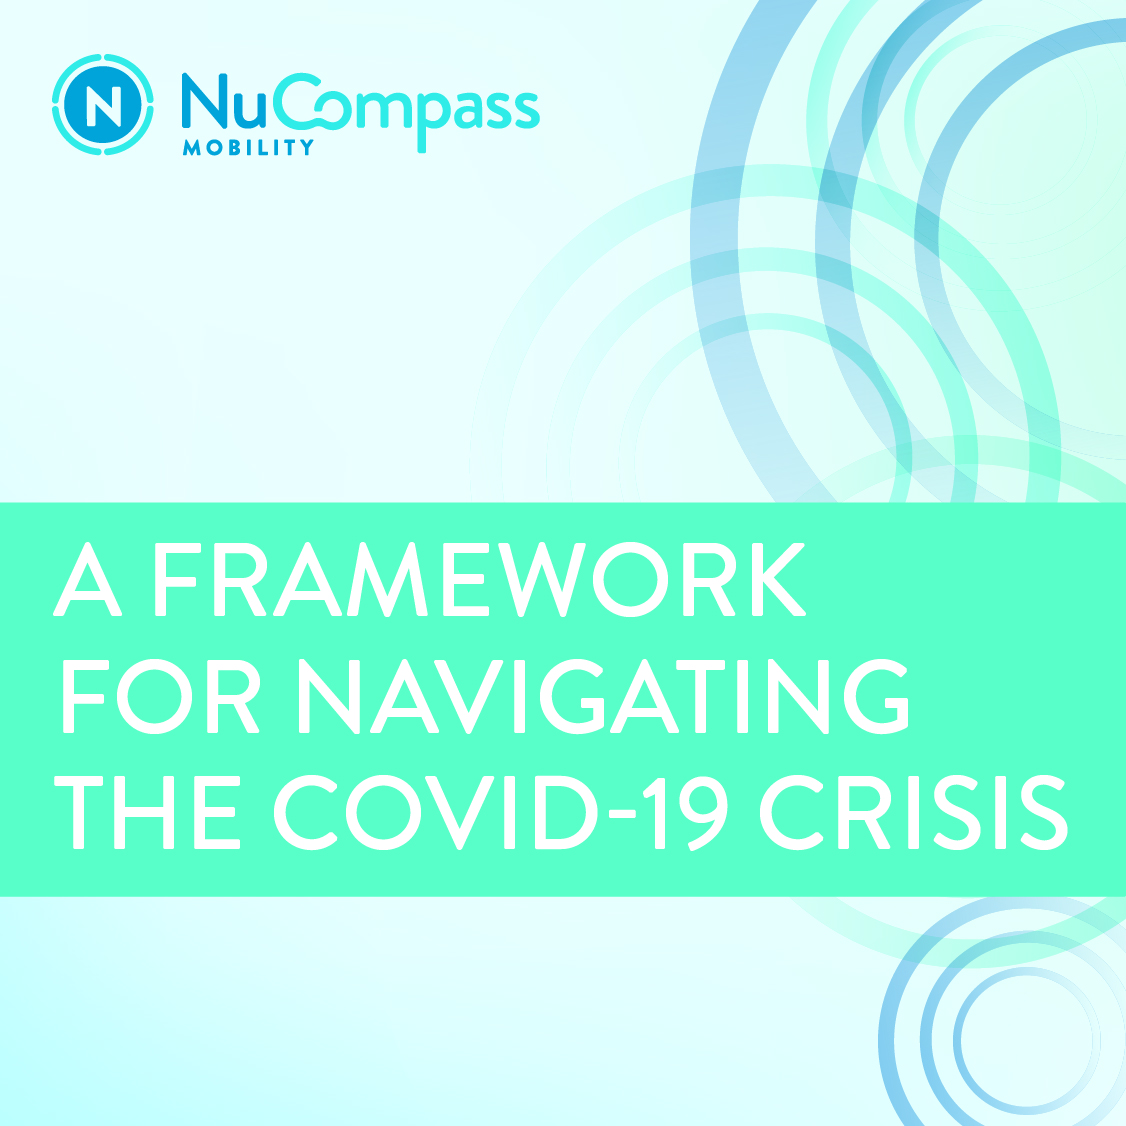 A Framework for Navigating the COVID-19 Crisis